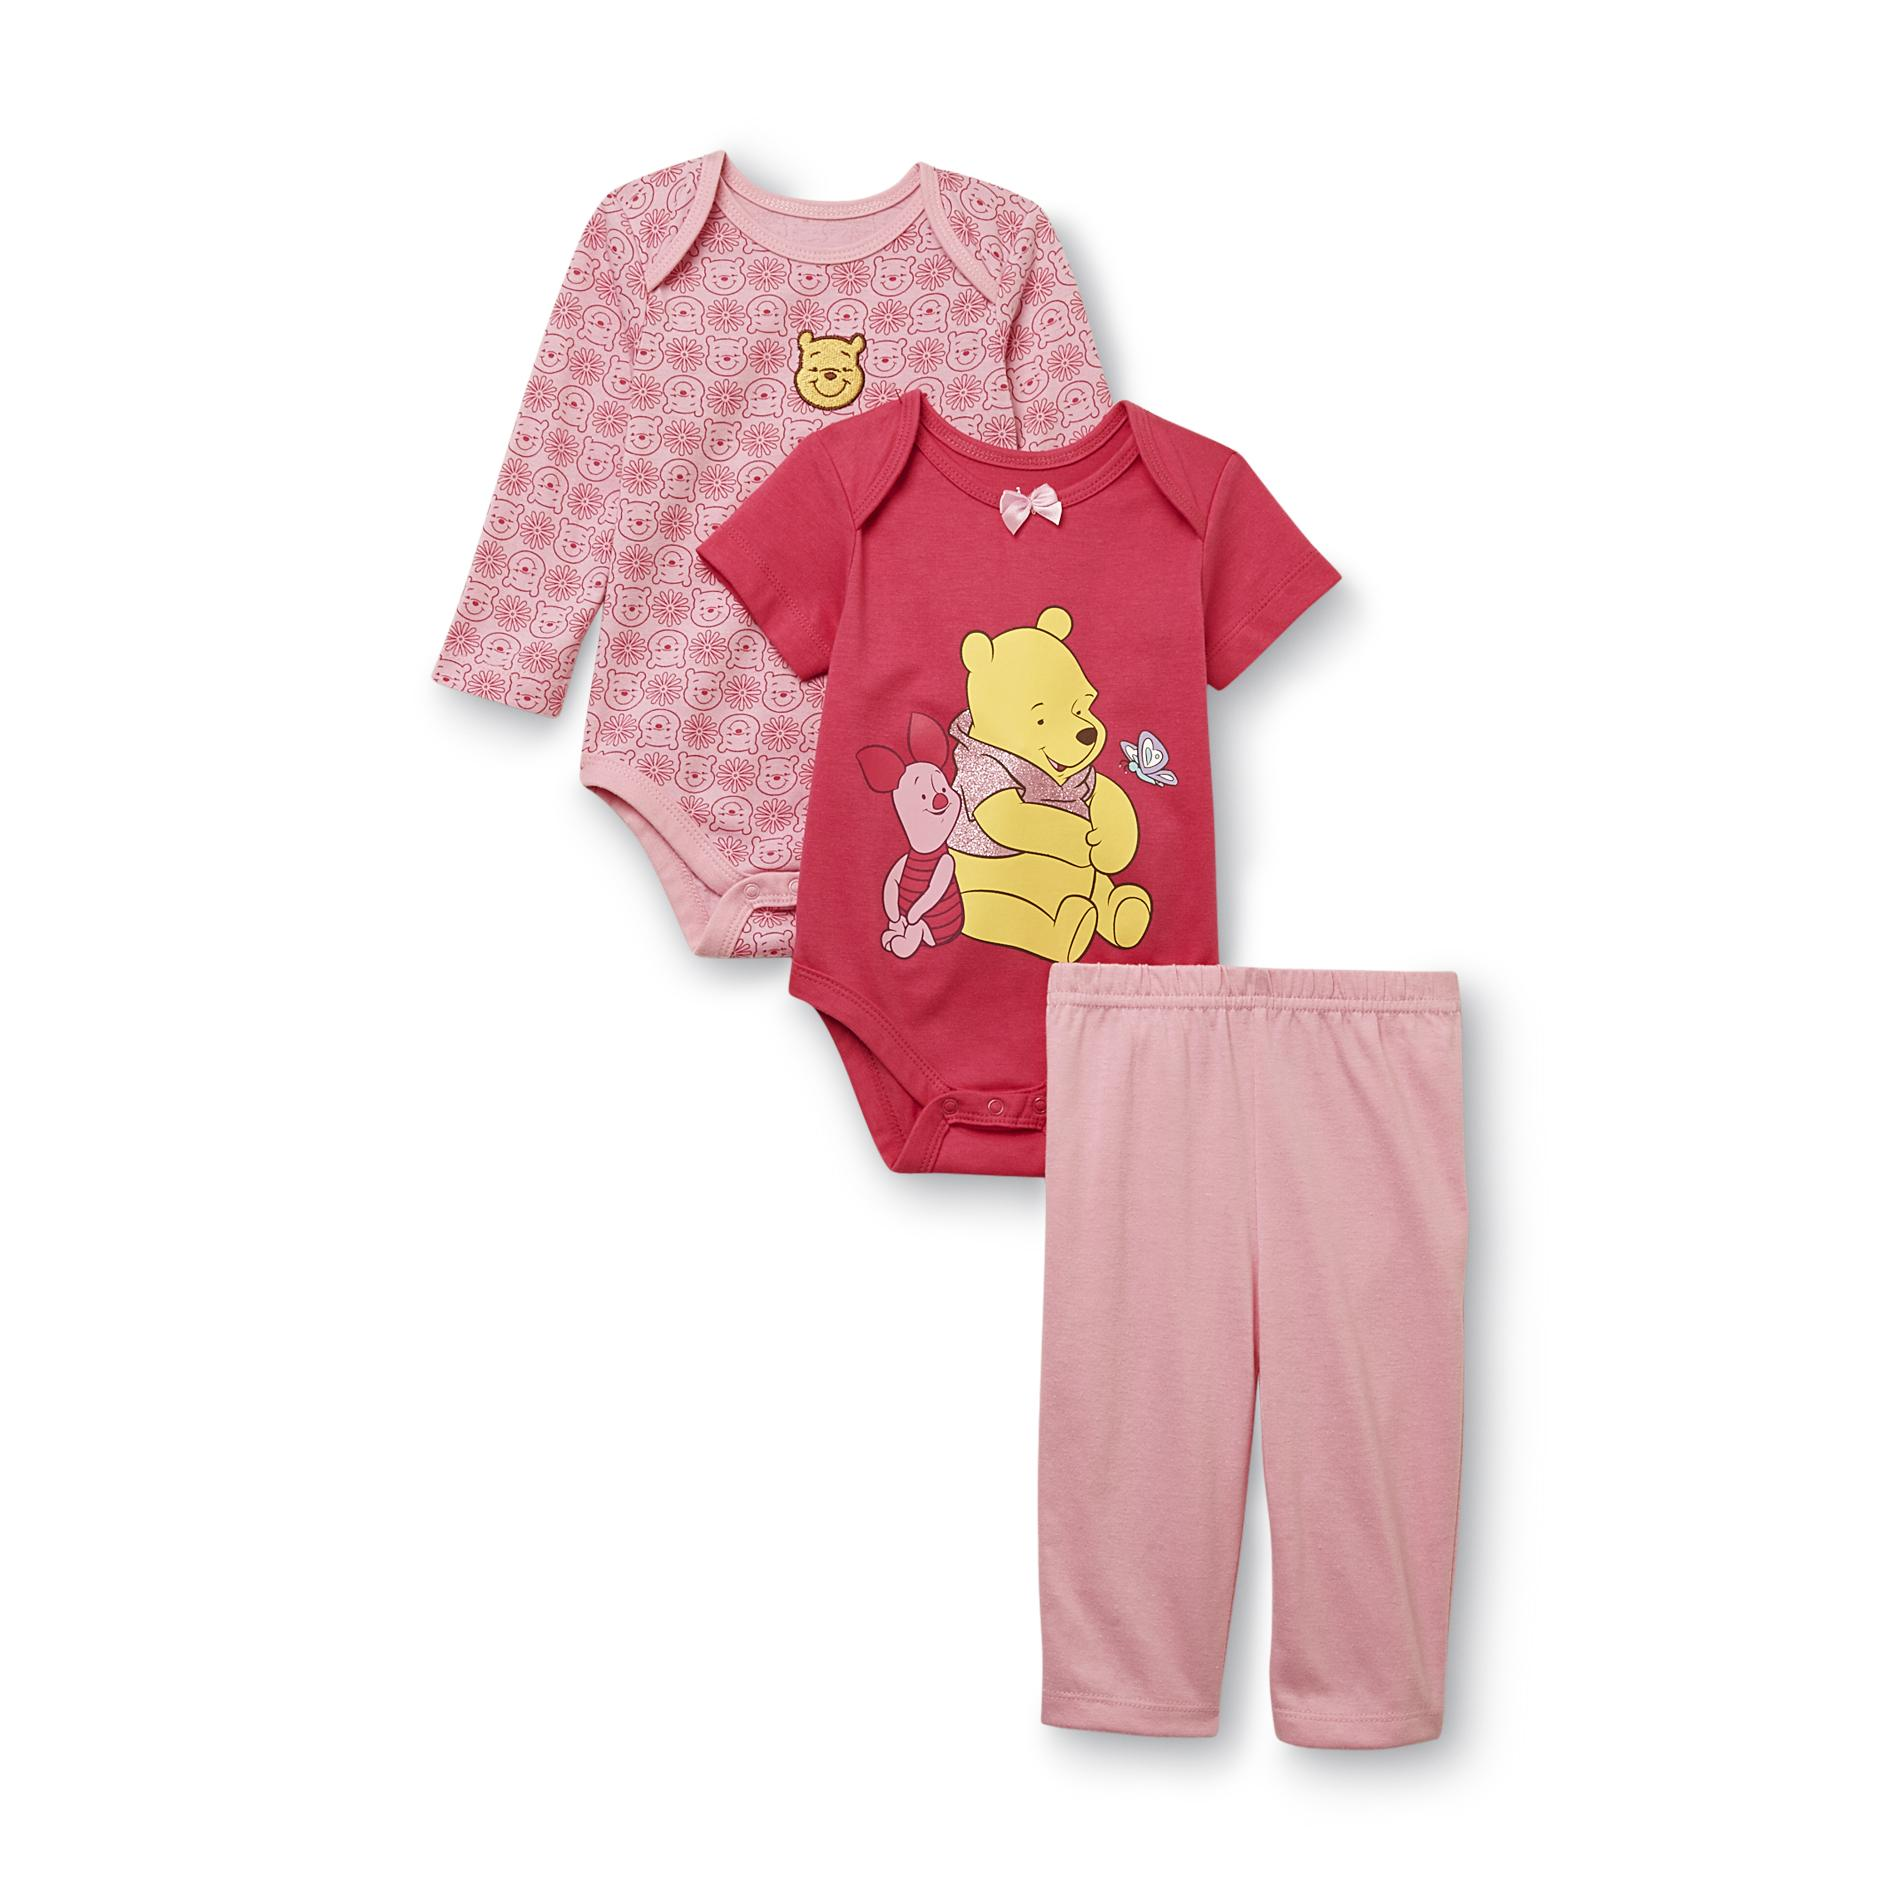 Pooh & Piglet Newborn Girl's Bodysuits & Pants